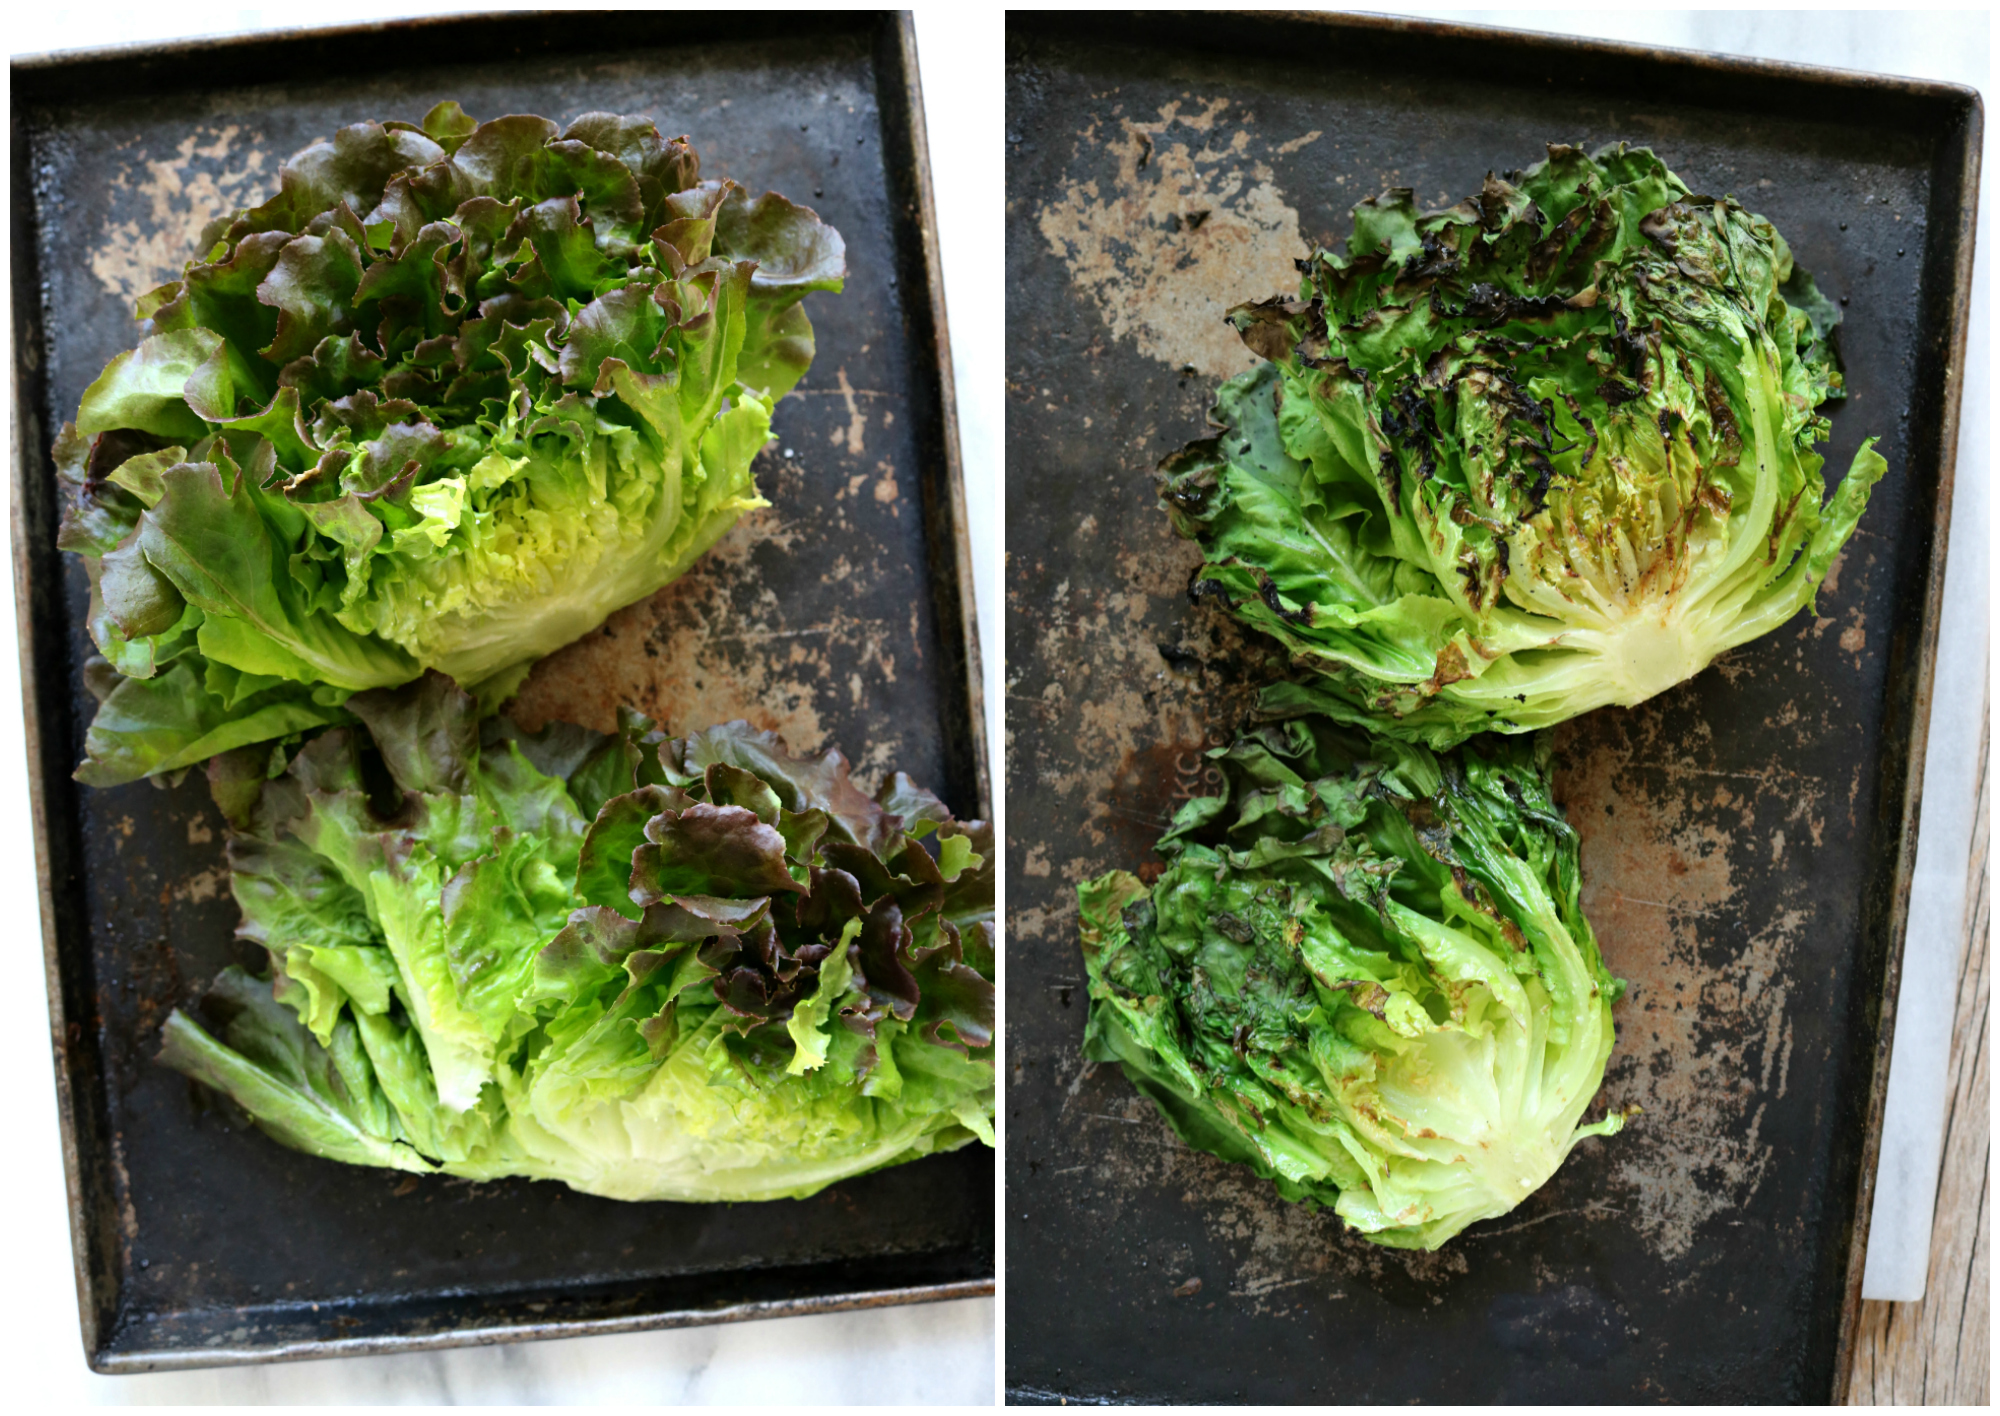 Grilled Inspired greens lettuce